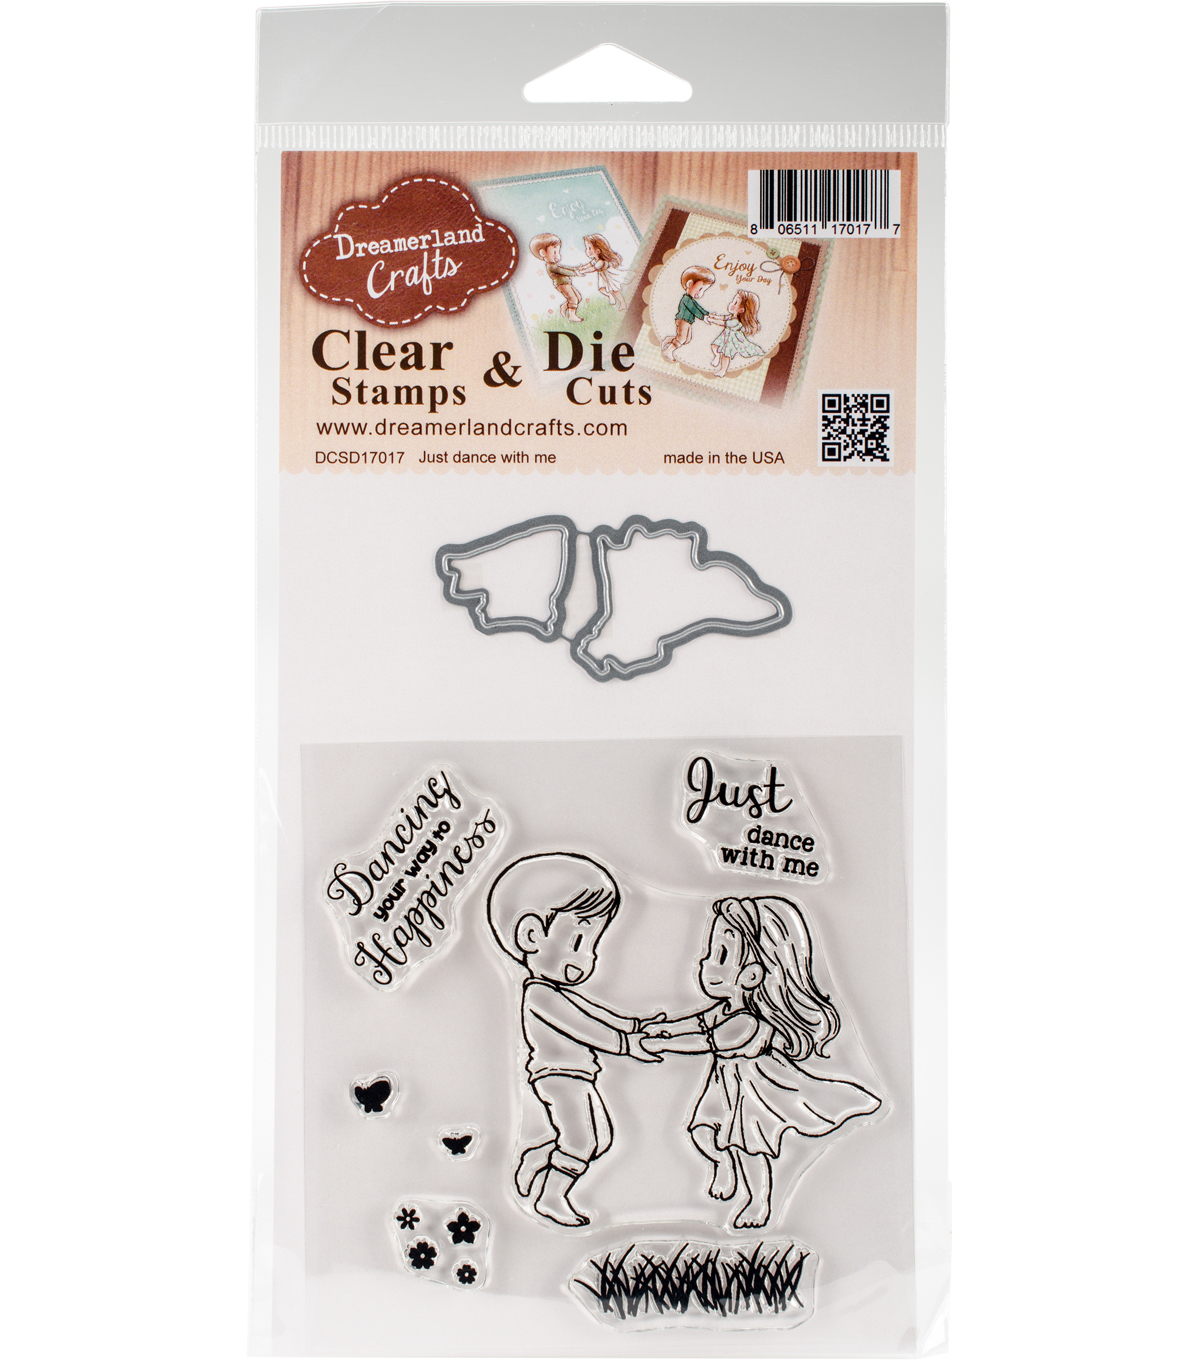 Dreamerland Crafts Clear Stamp & Die Cut Set-Just Dance With Me